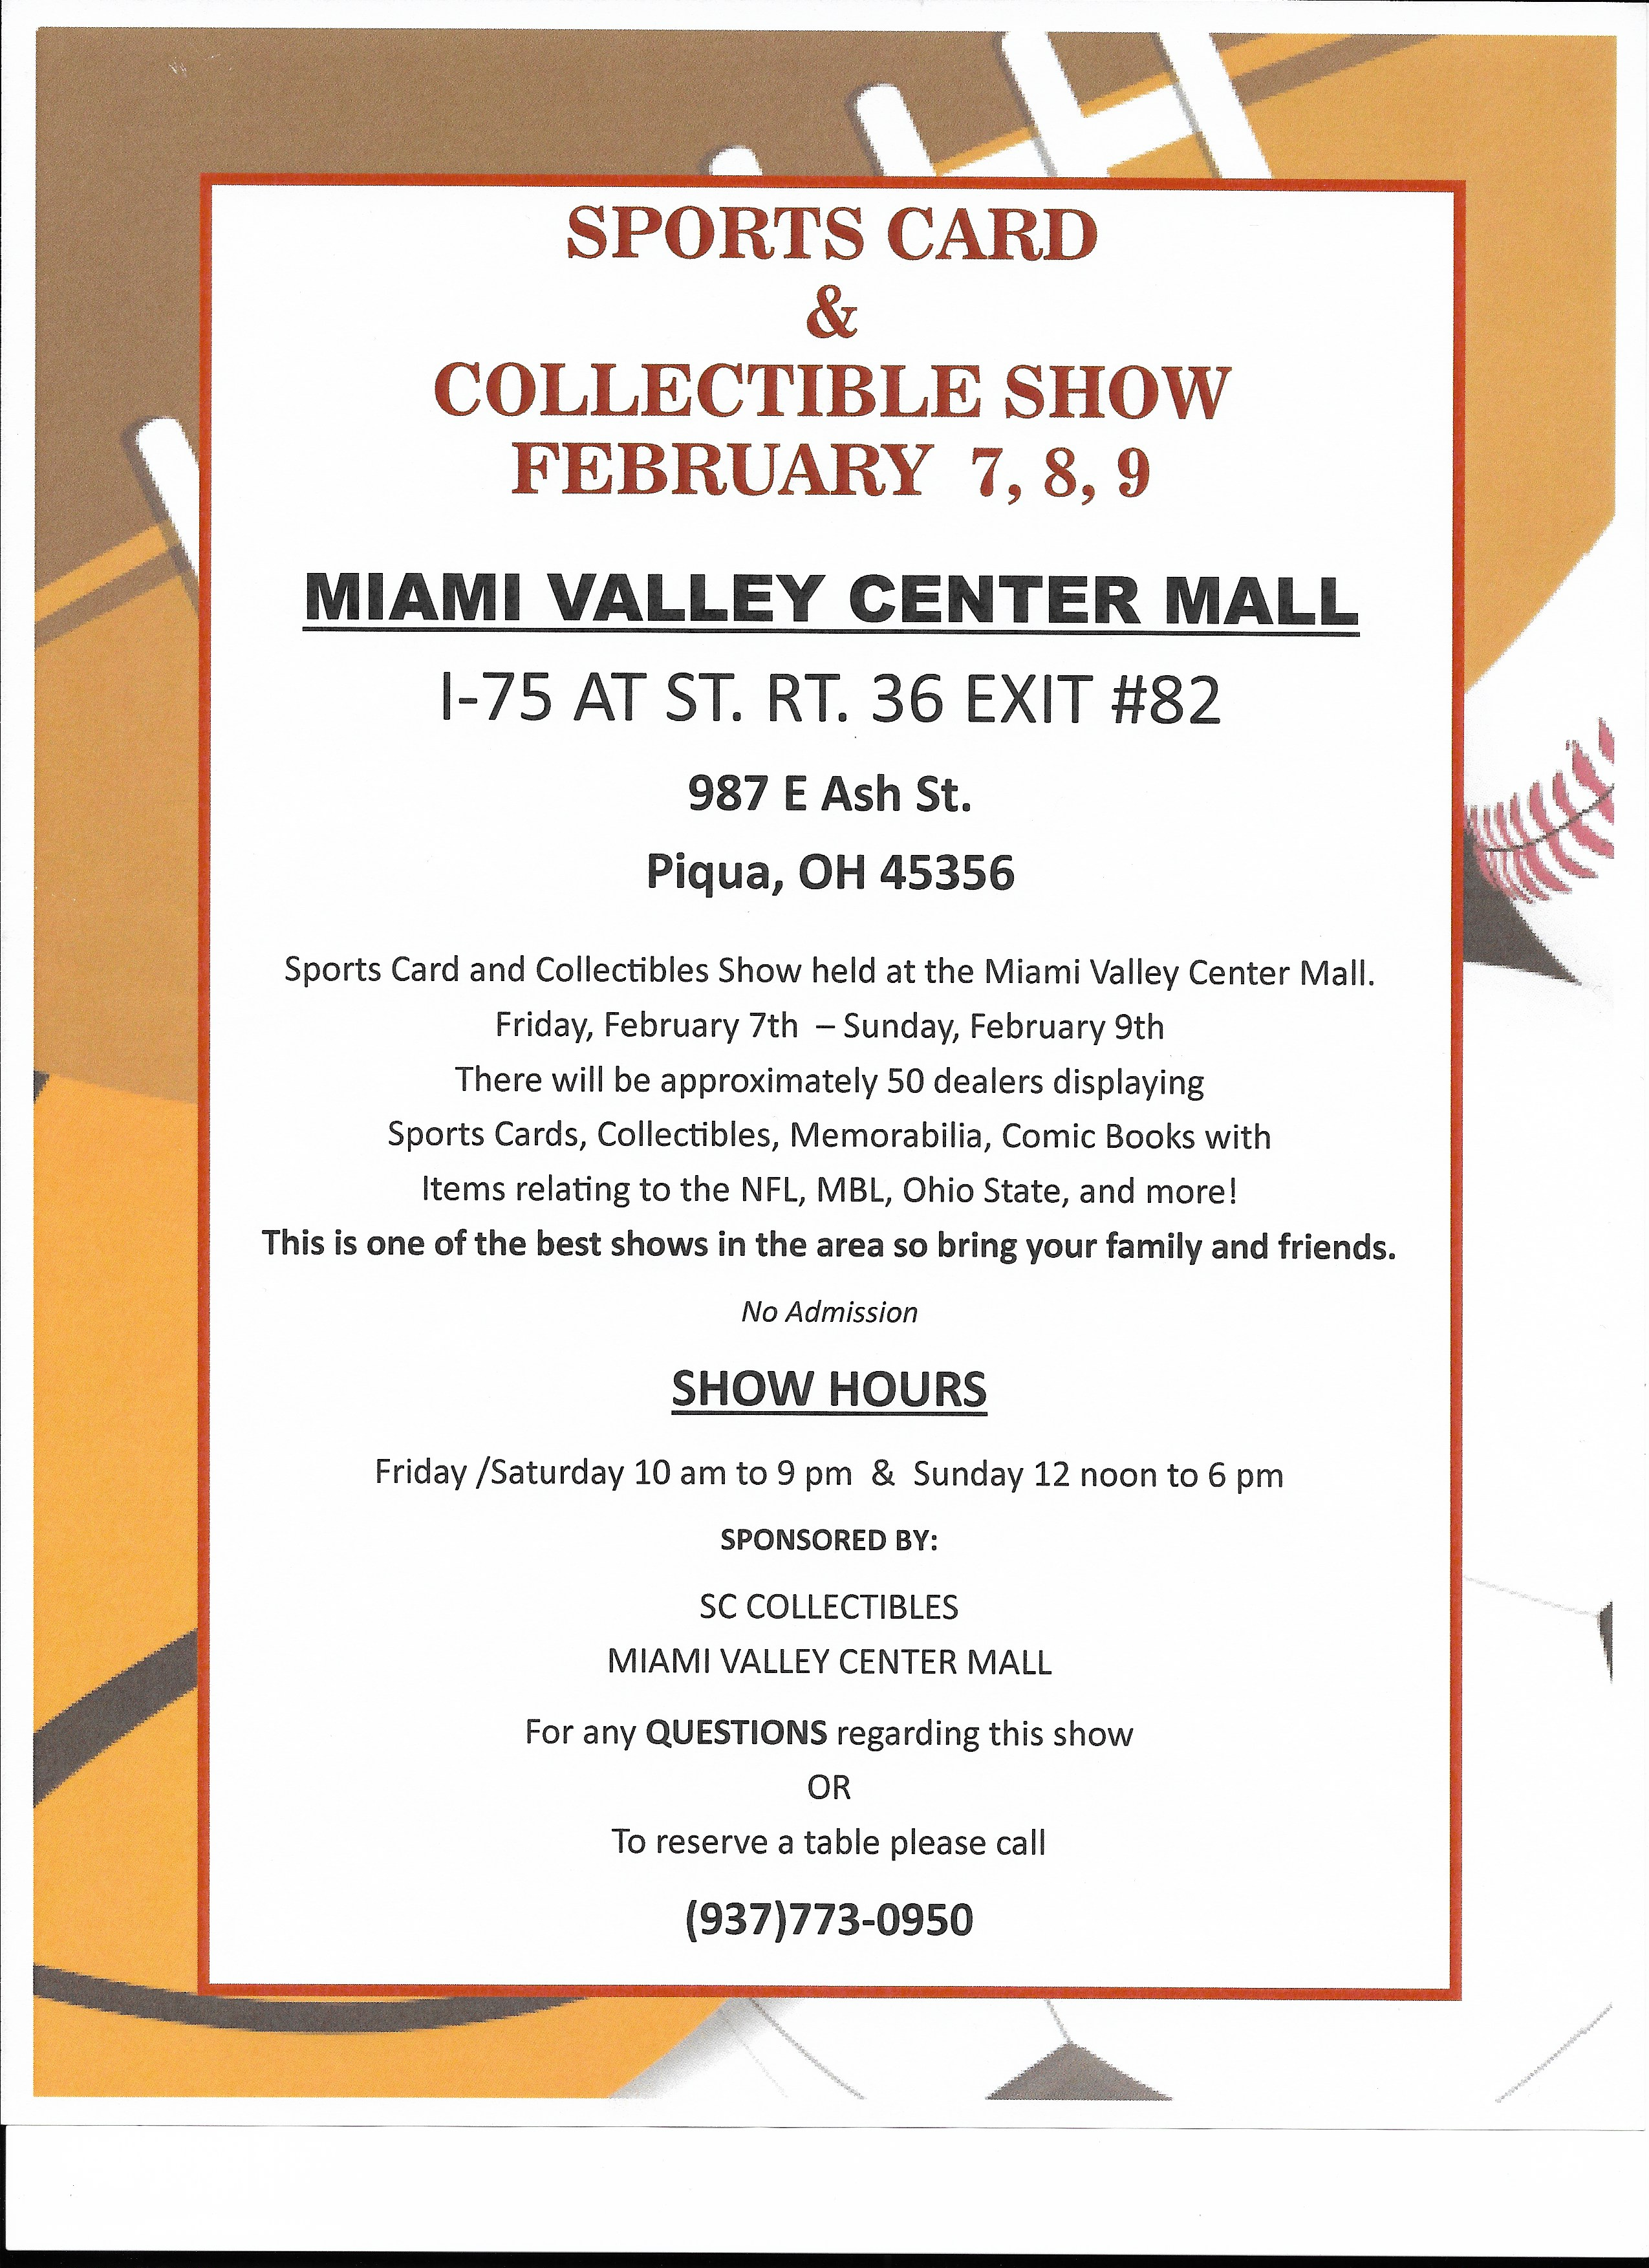 sports card and collectibles show information